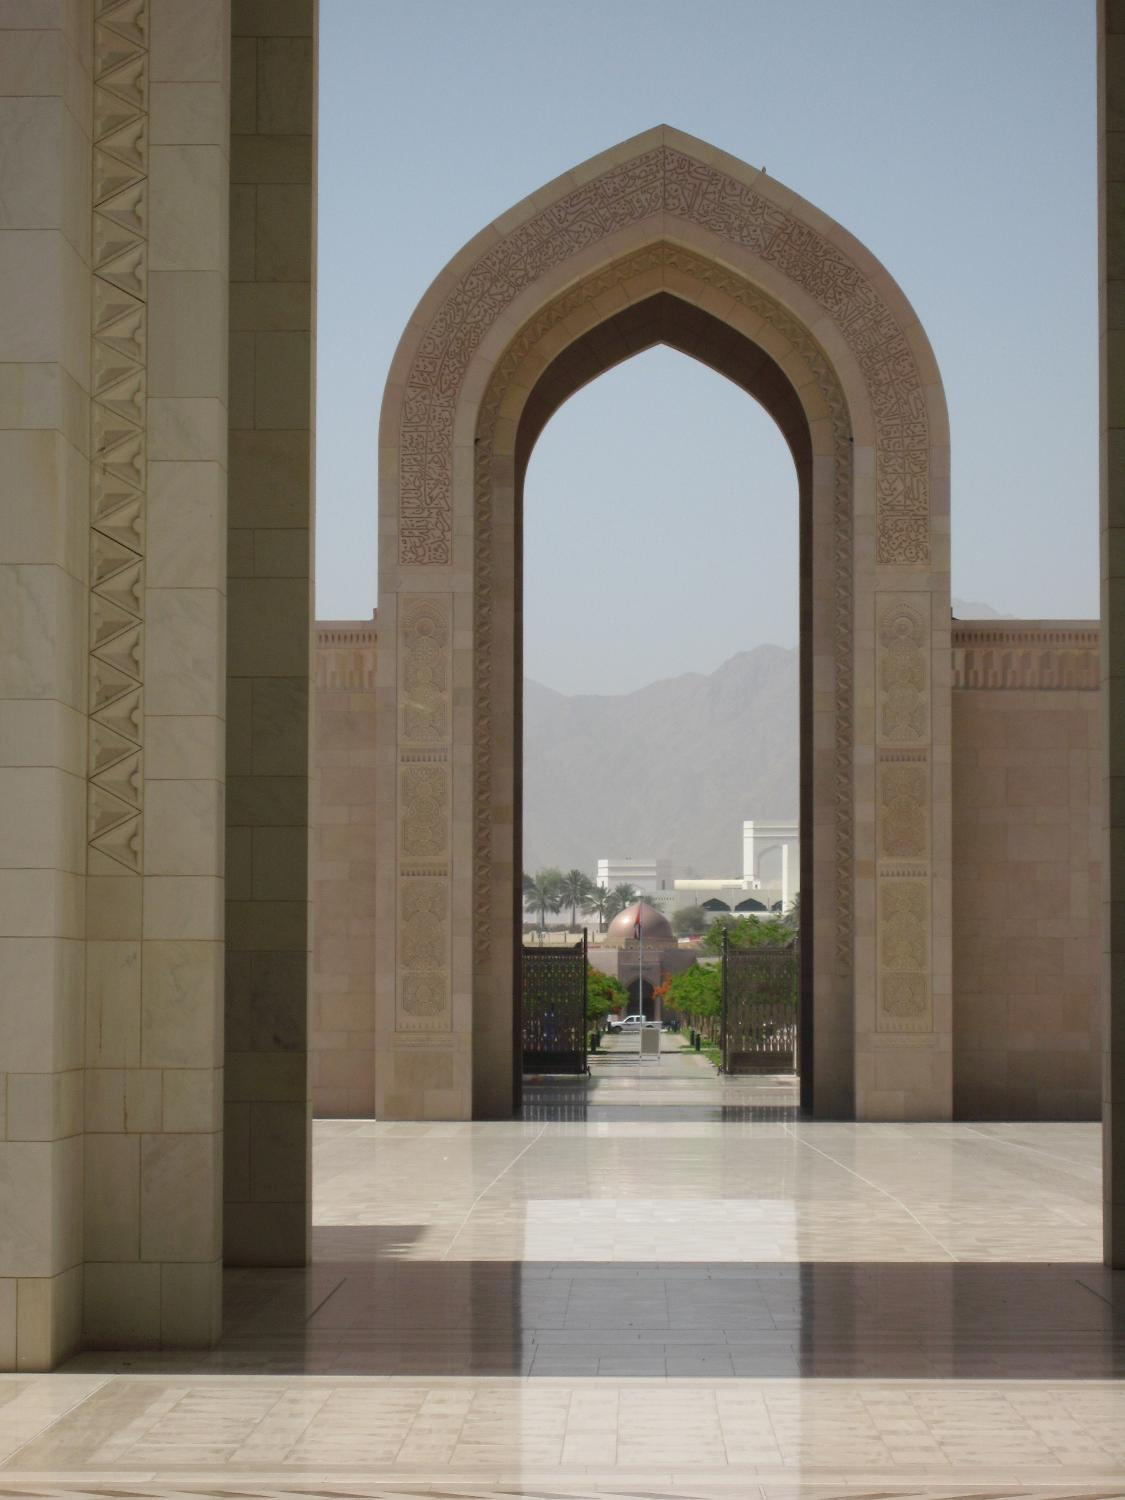 Oman, Muscat, Grand Mosque